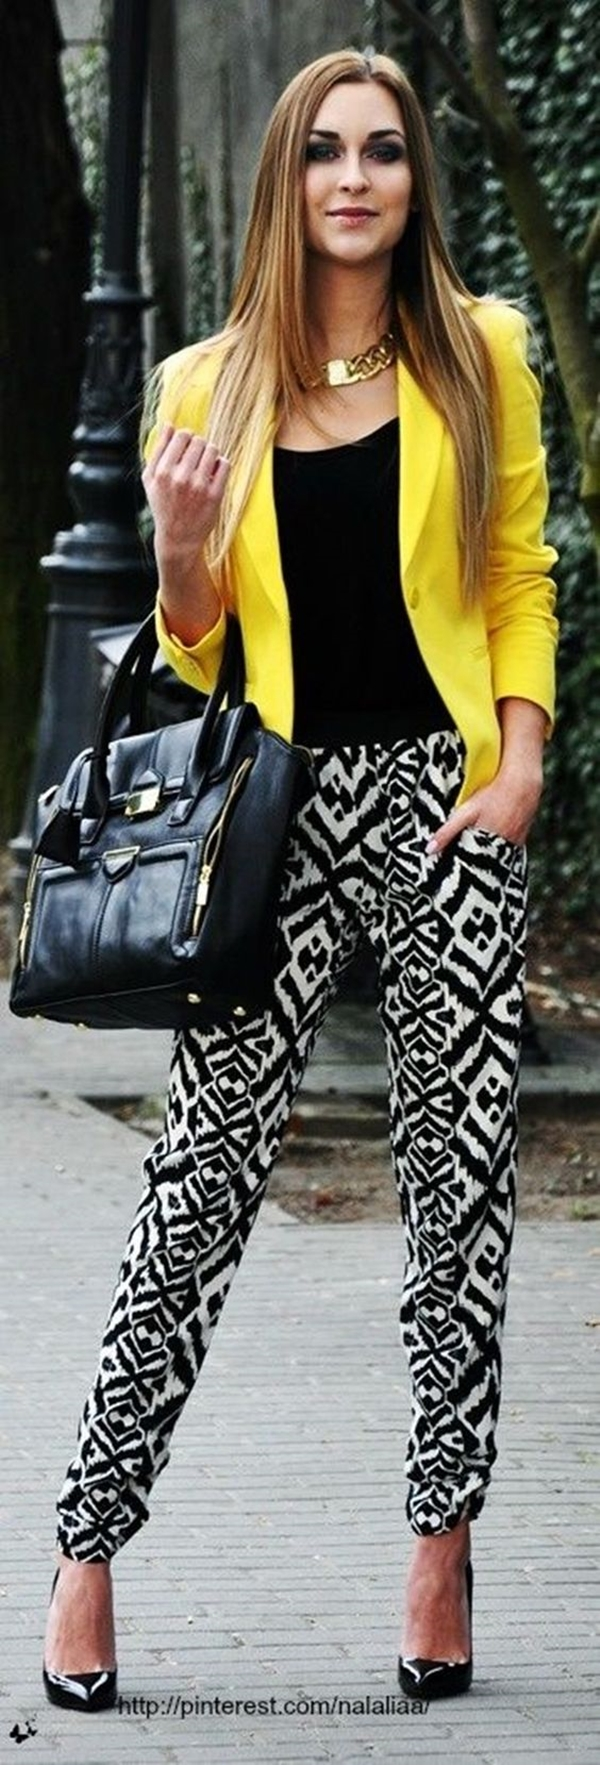 outfits-with-blazer-for-office-women-15